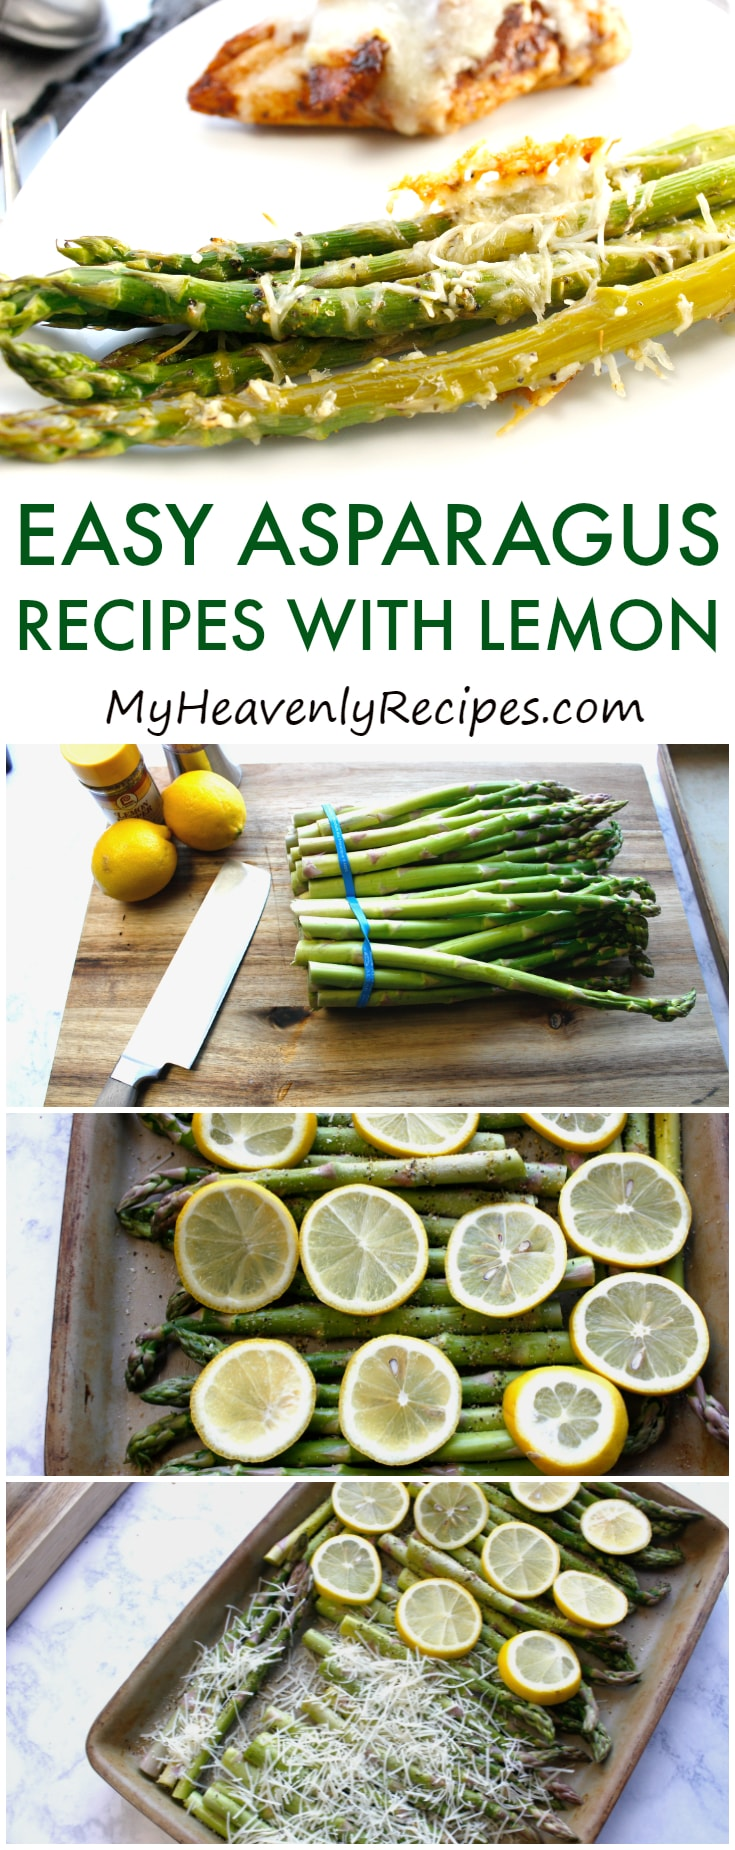 You will seriously LOVE these two easy lemon asparagus recipes! Even if you're not the biggest asparagus fan, you'll be a convert after trying these asparagus recipes with lemon. #asparagus #asparagusrecipes #easyasparagusrecipes